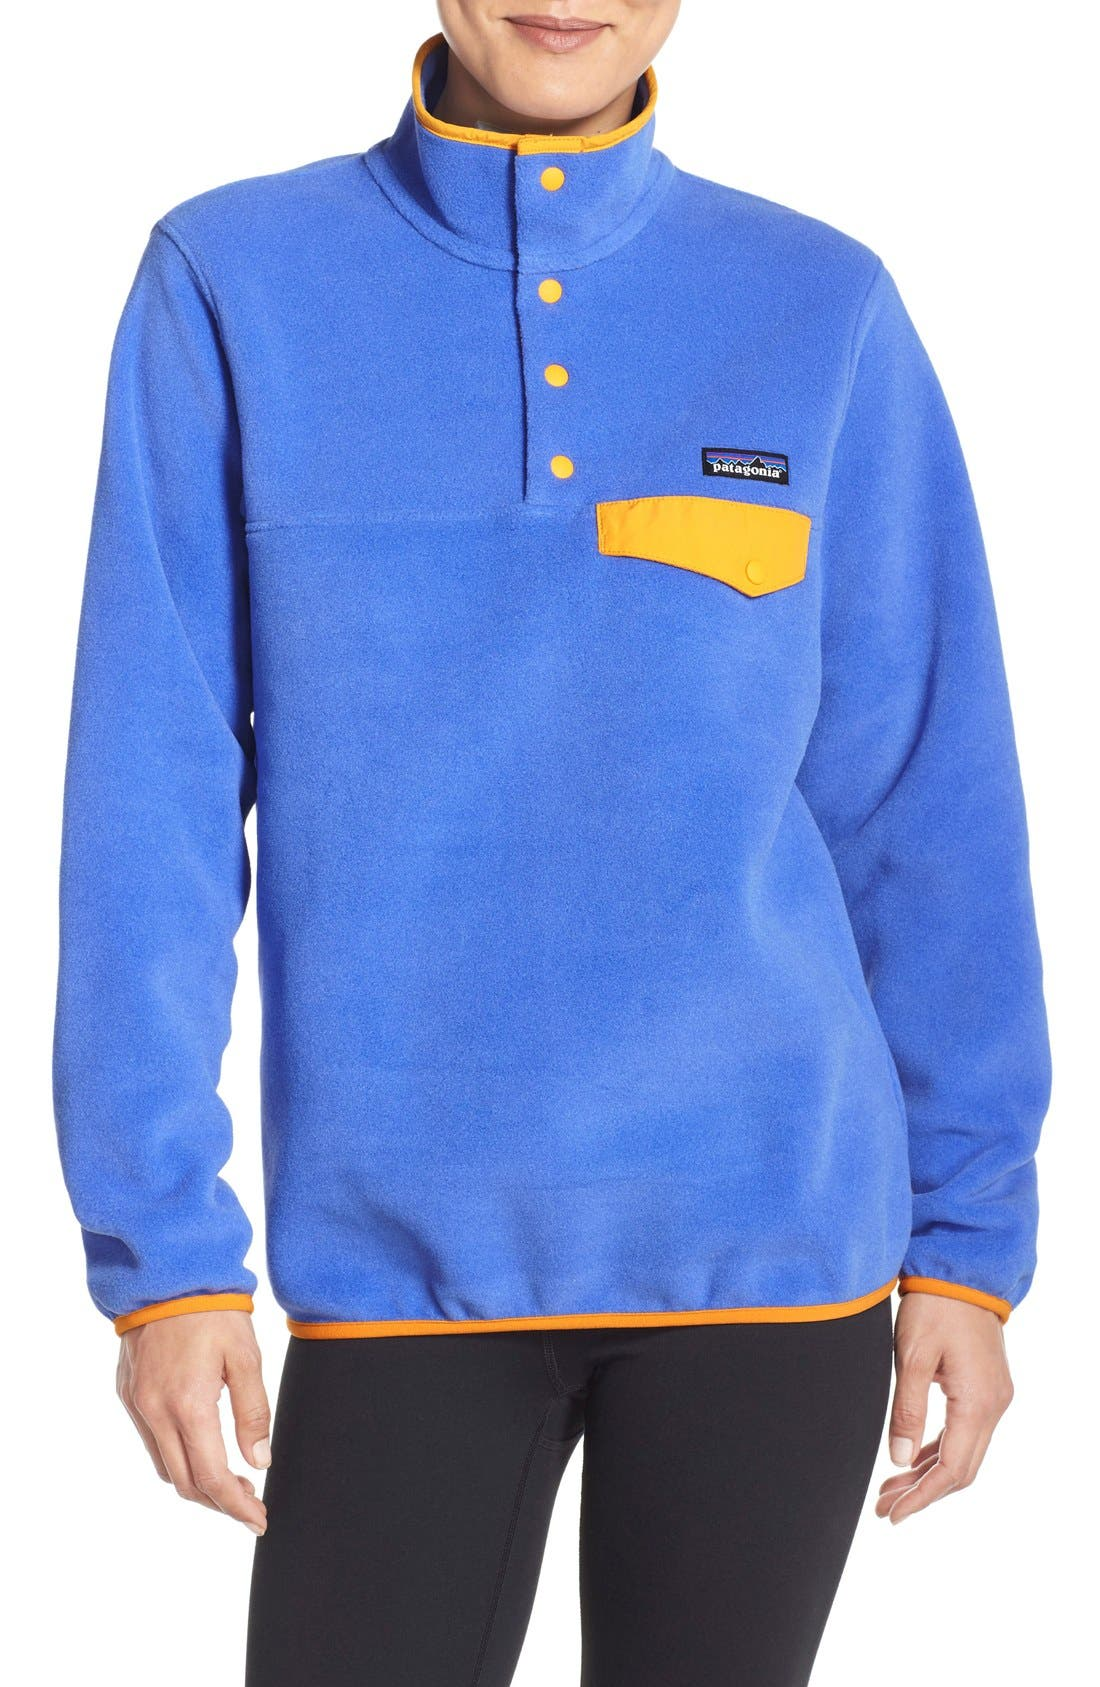 Alternate Image 1 Selected - Patagonia 'Synchilla' Fleece Pullover